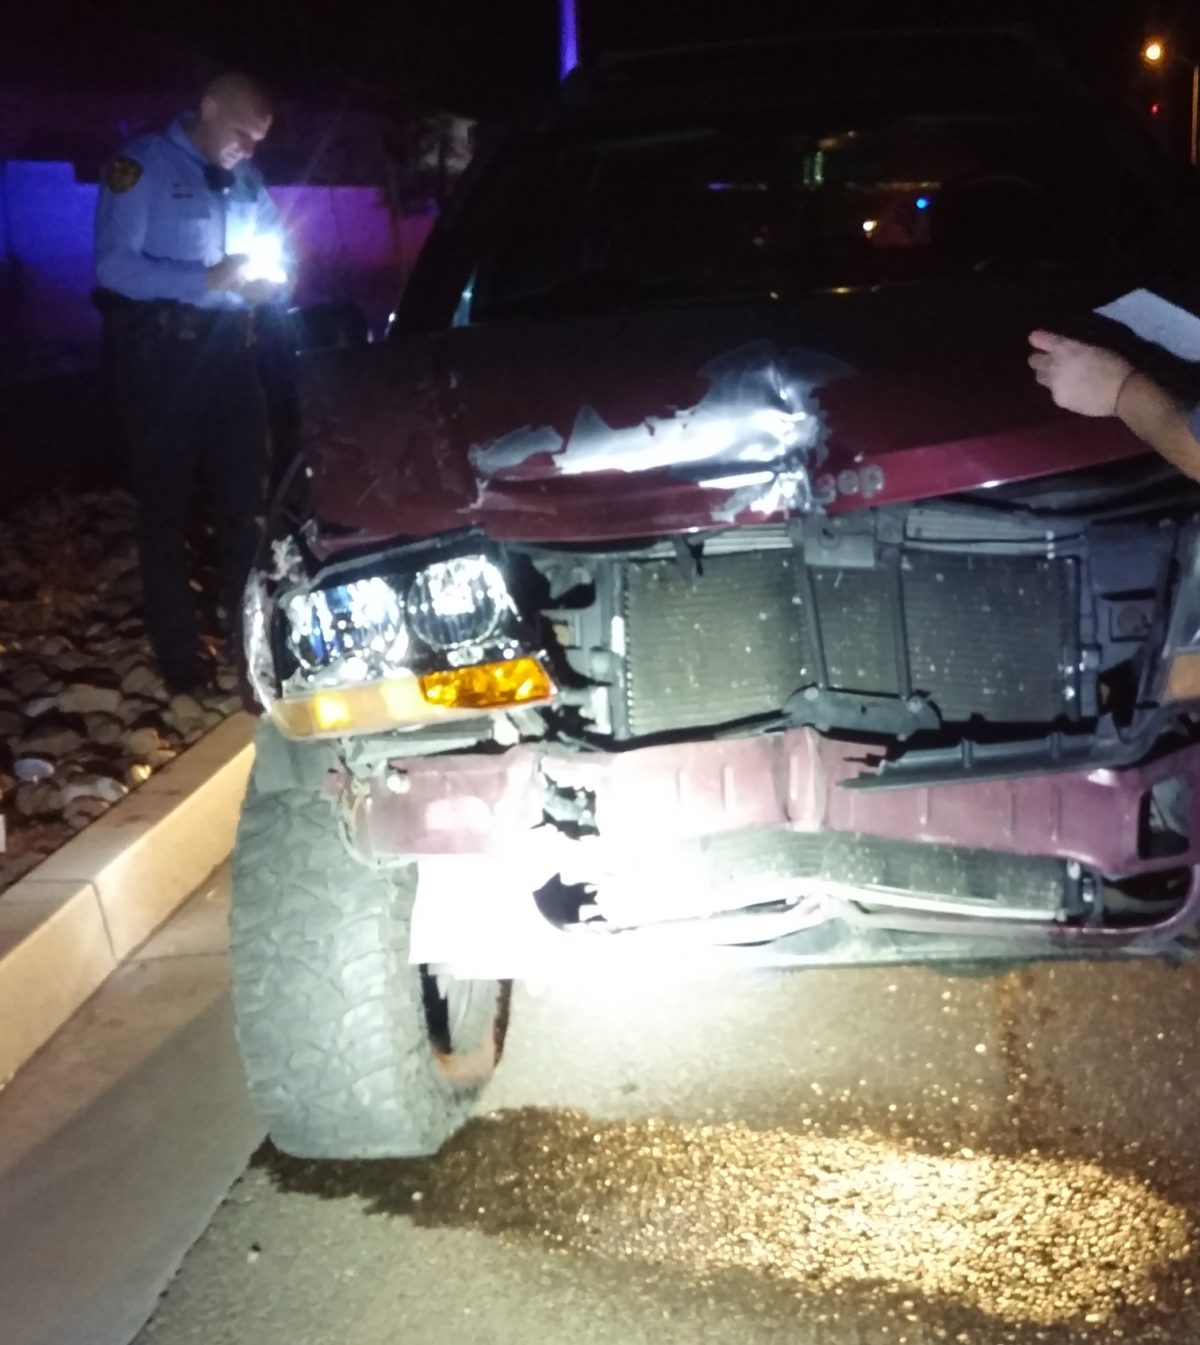 Maroon 2001 Jeep Cherokee was involved in a single vehicle crash involving two electrical boxes that were replaced when more than 350 customers lost power early Thursday morning in St. George, Utah, Dec. 8, 2016 | Photo courtesy of Lona Trombley, St. George News